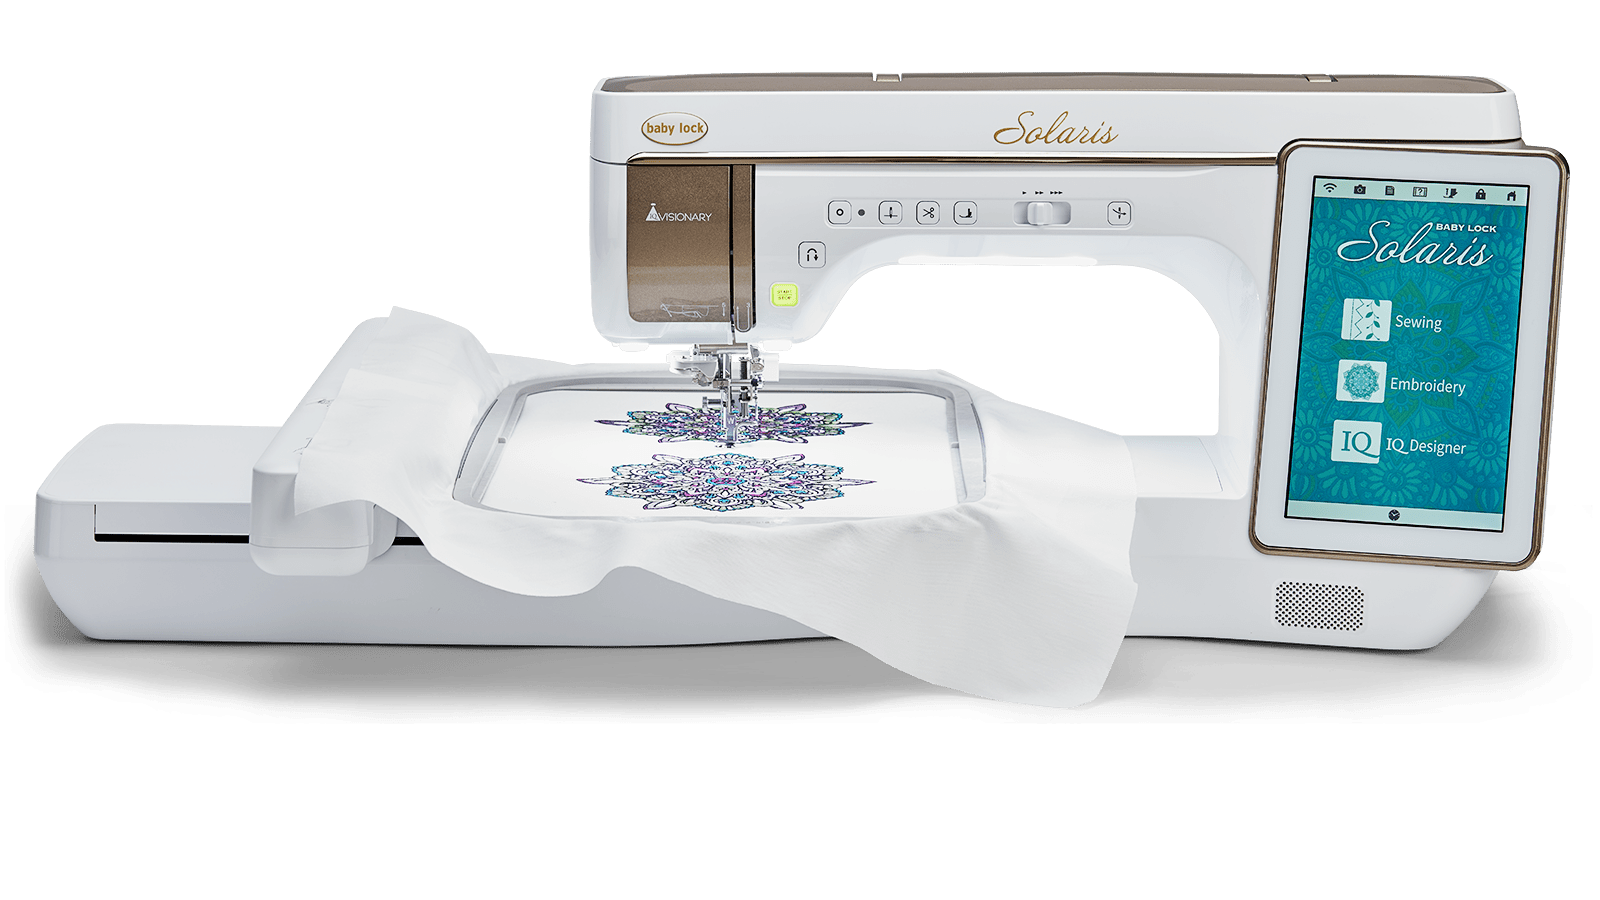 Solaris Sewing & Embroidery Machine